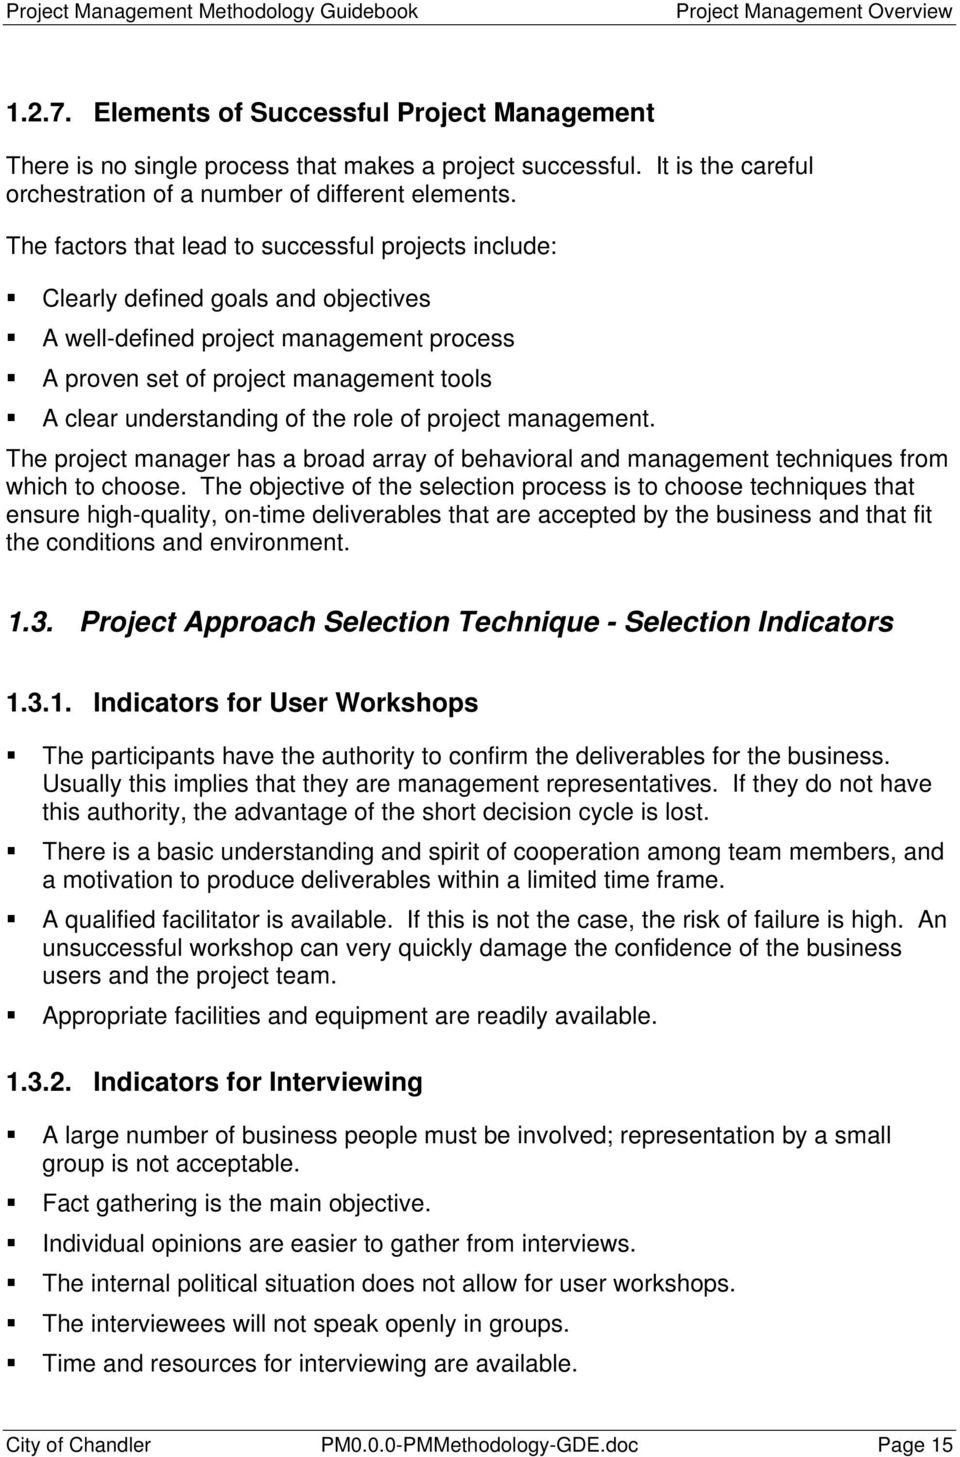 The factors that lead to successful projects include: Clearly defined goals and objectives A well-defined project management process A proven set of project management tools A clear understanding of